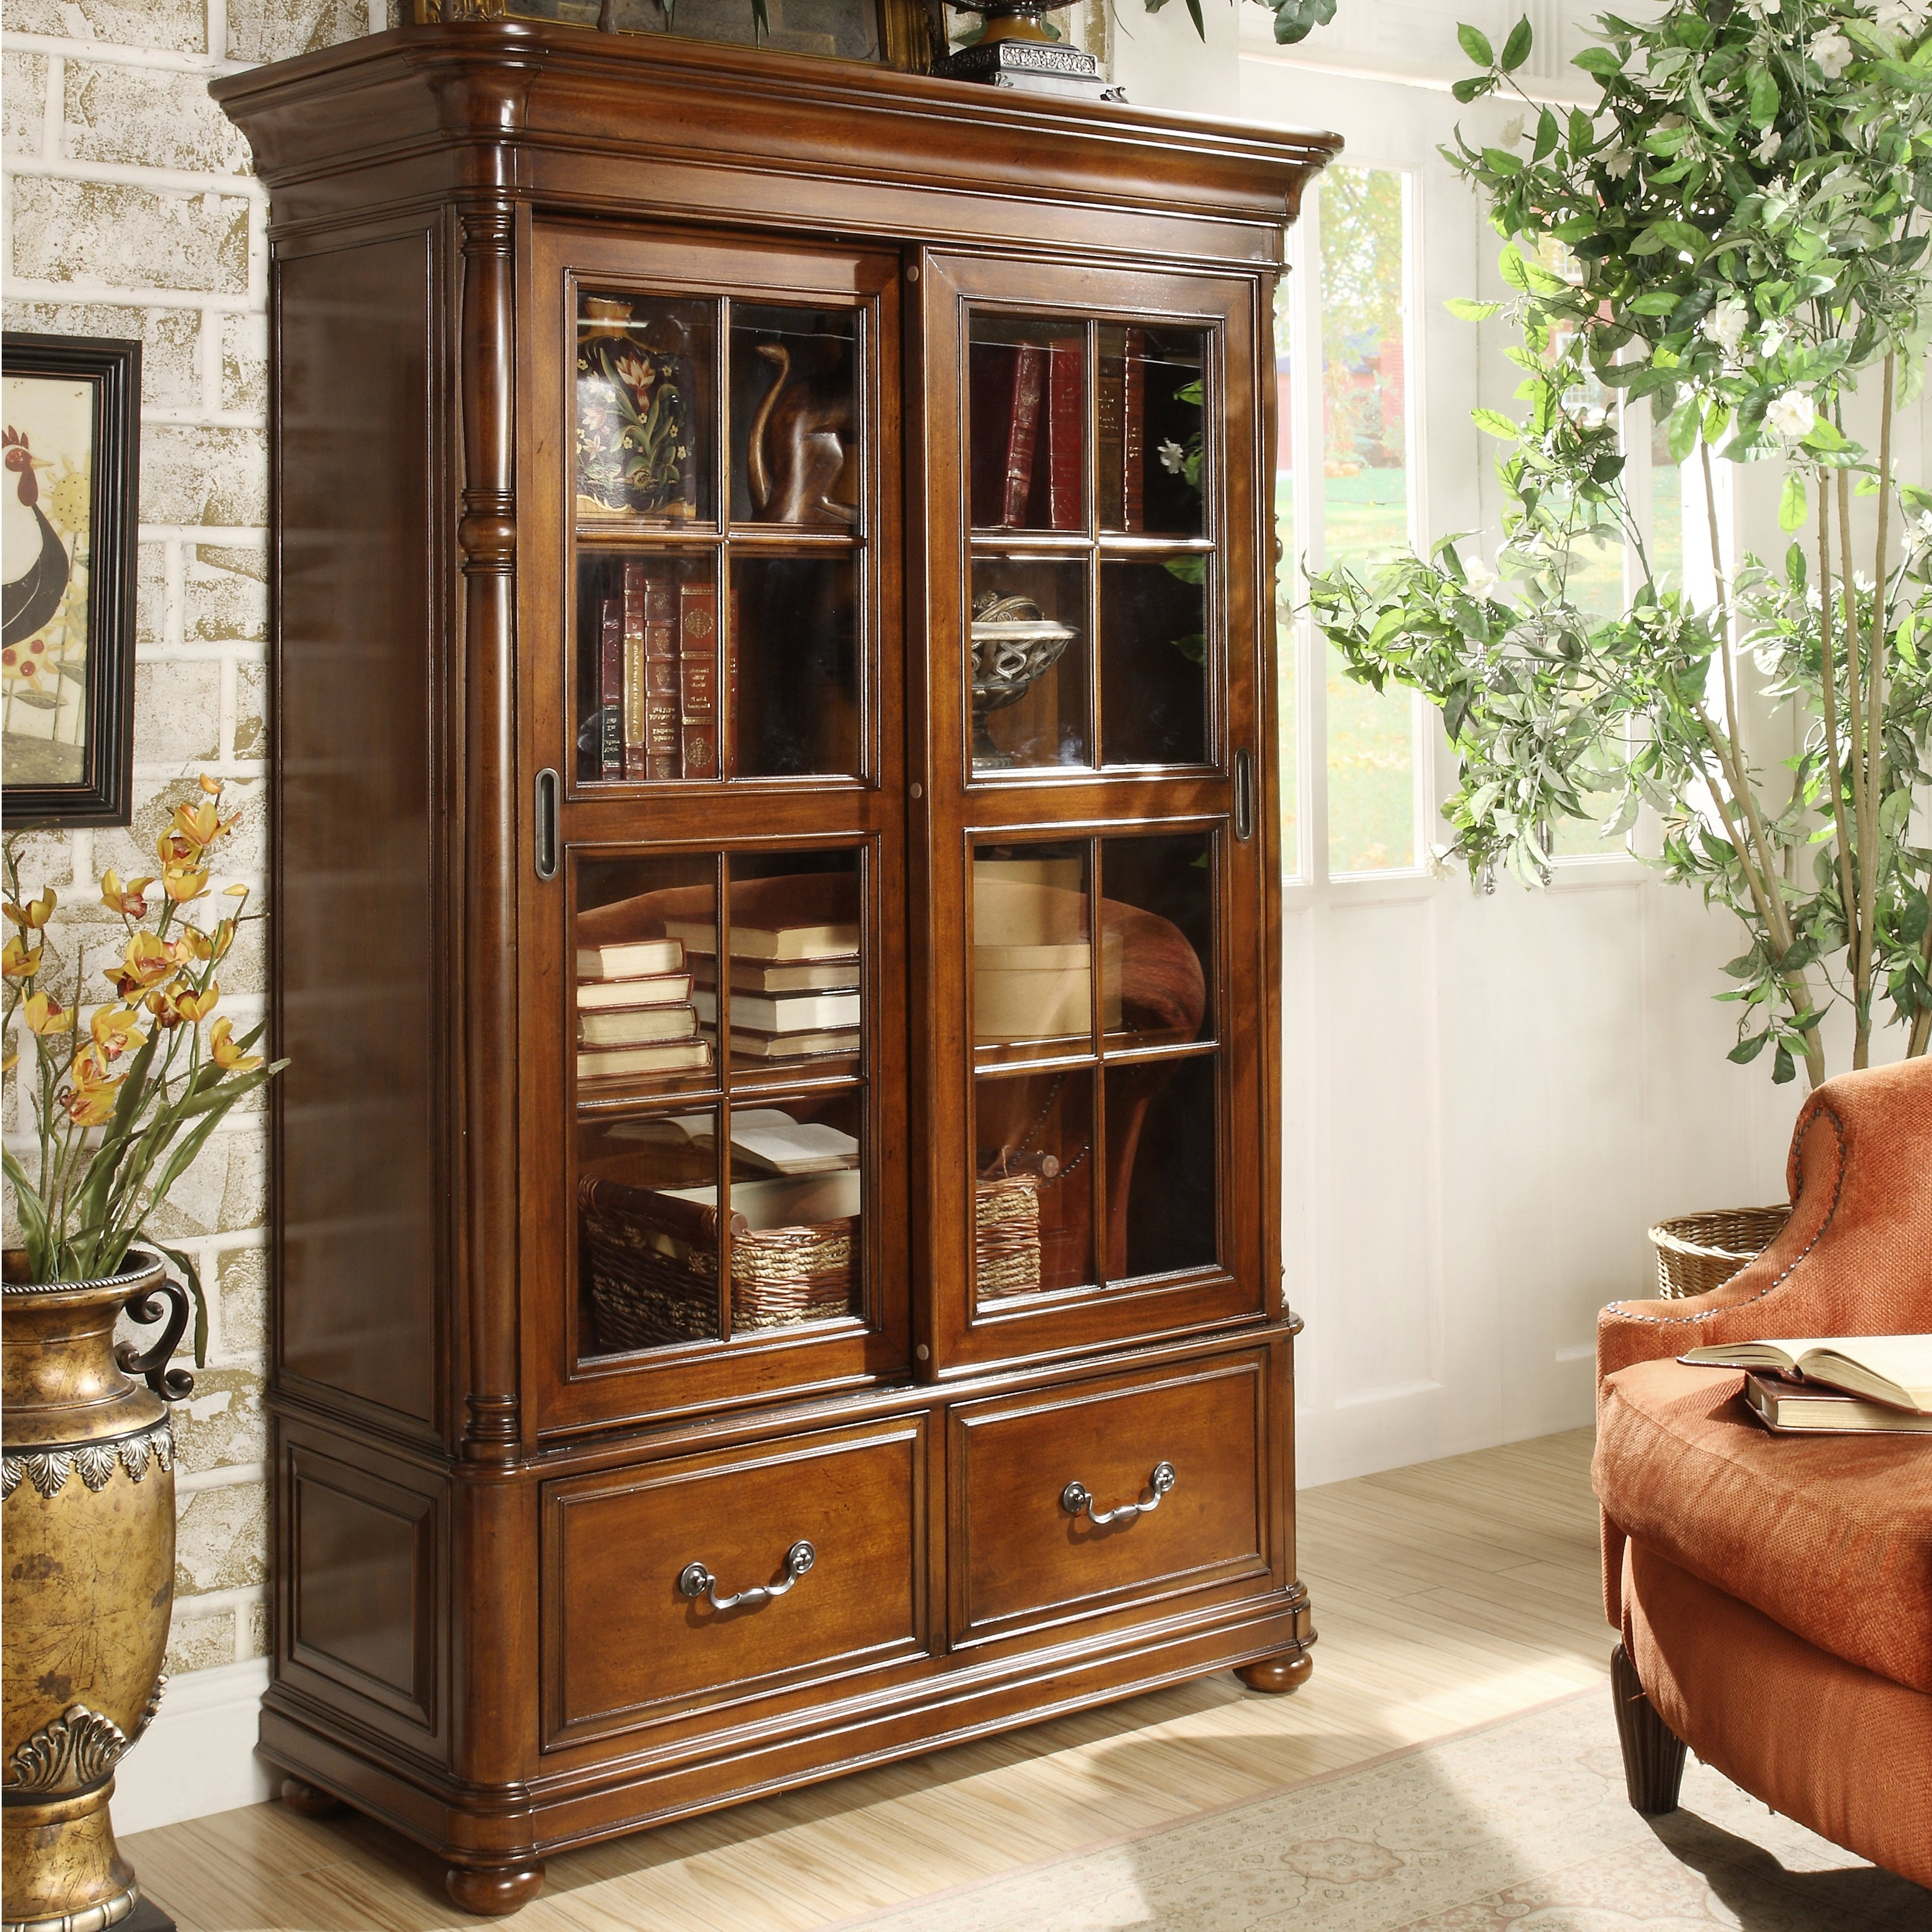 Riverside Allegro Sliding Door Bookcase (View 13 of 15)